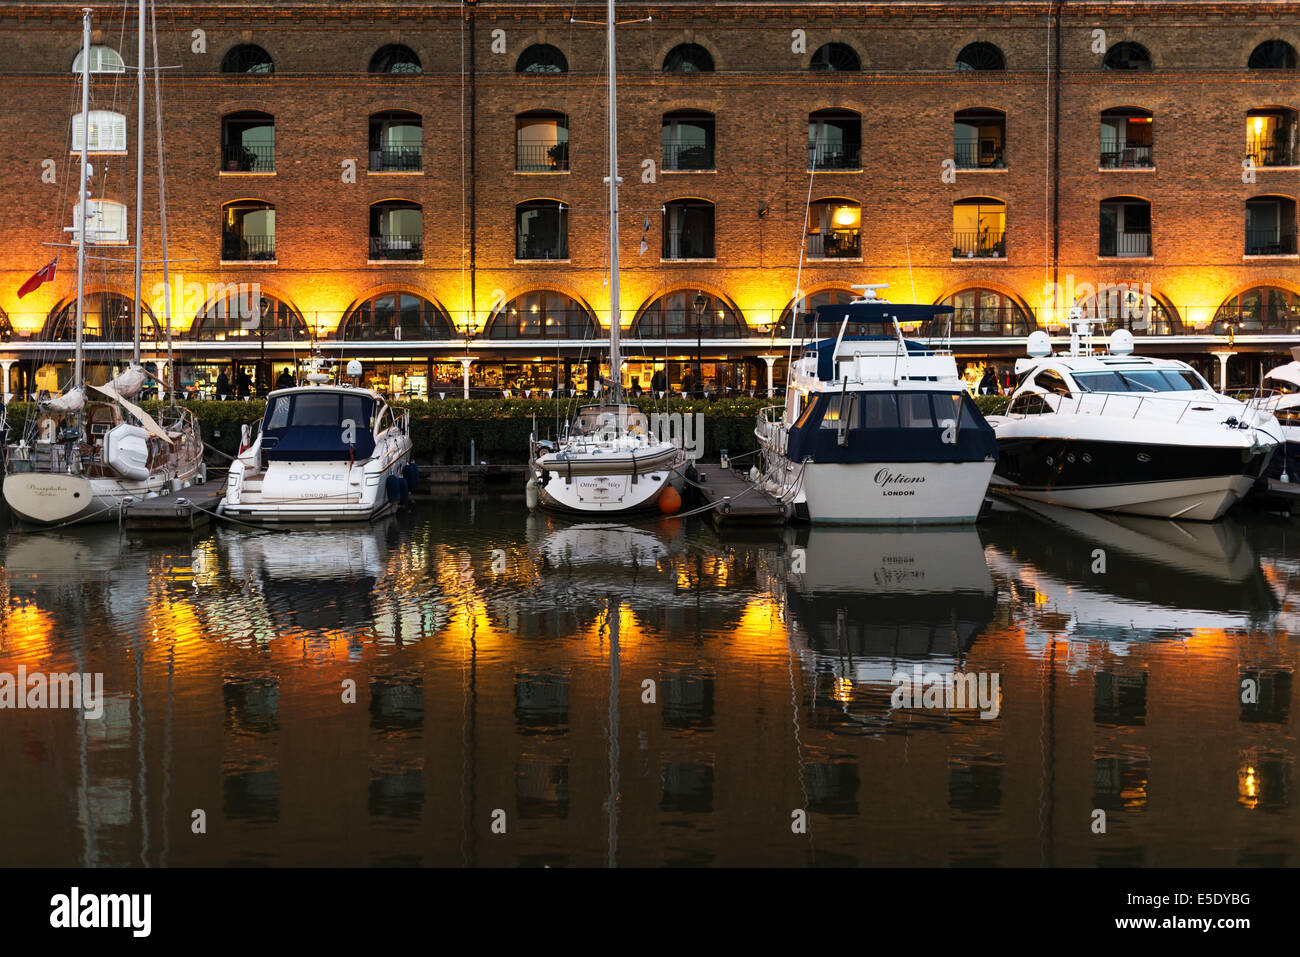 Boats and reflections in St Katharine Docks at sunset. St Katharine Docks, in the London Borough of Tower Hamlets Stock Photo